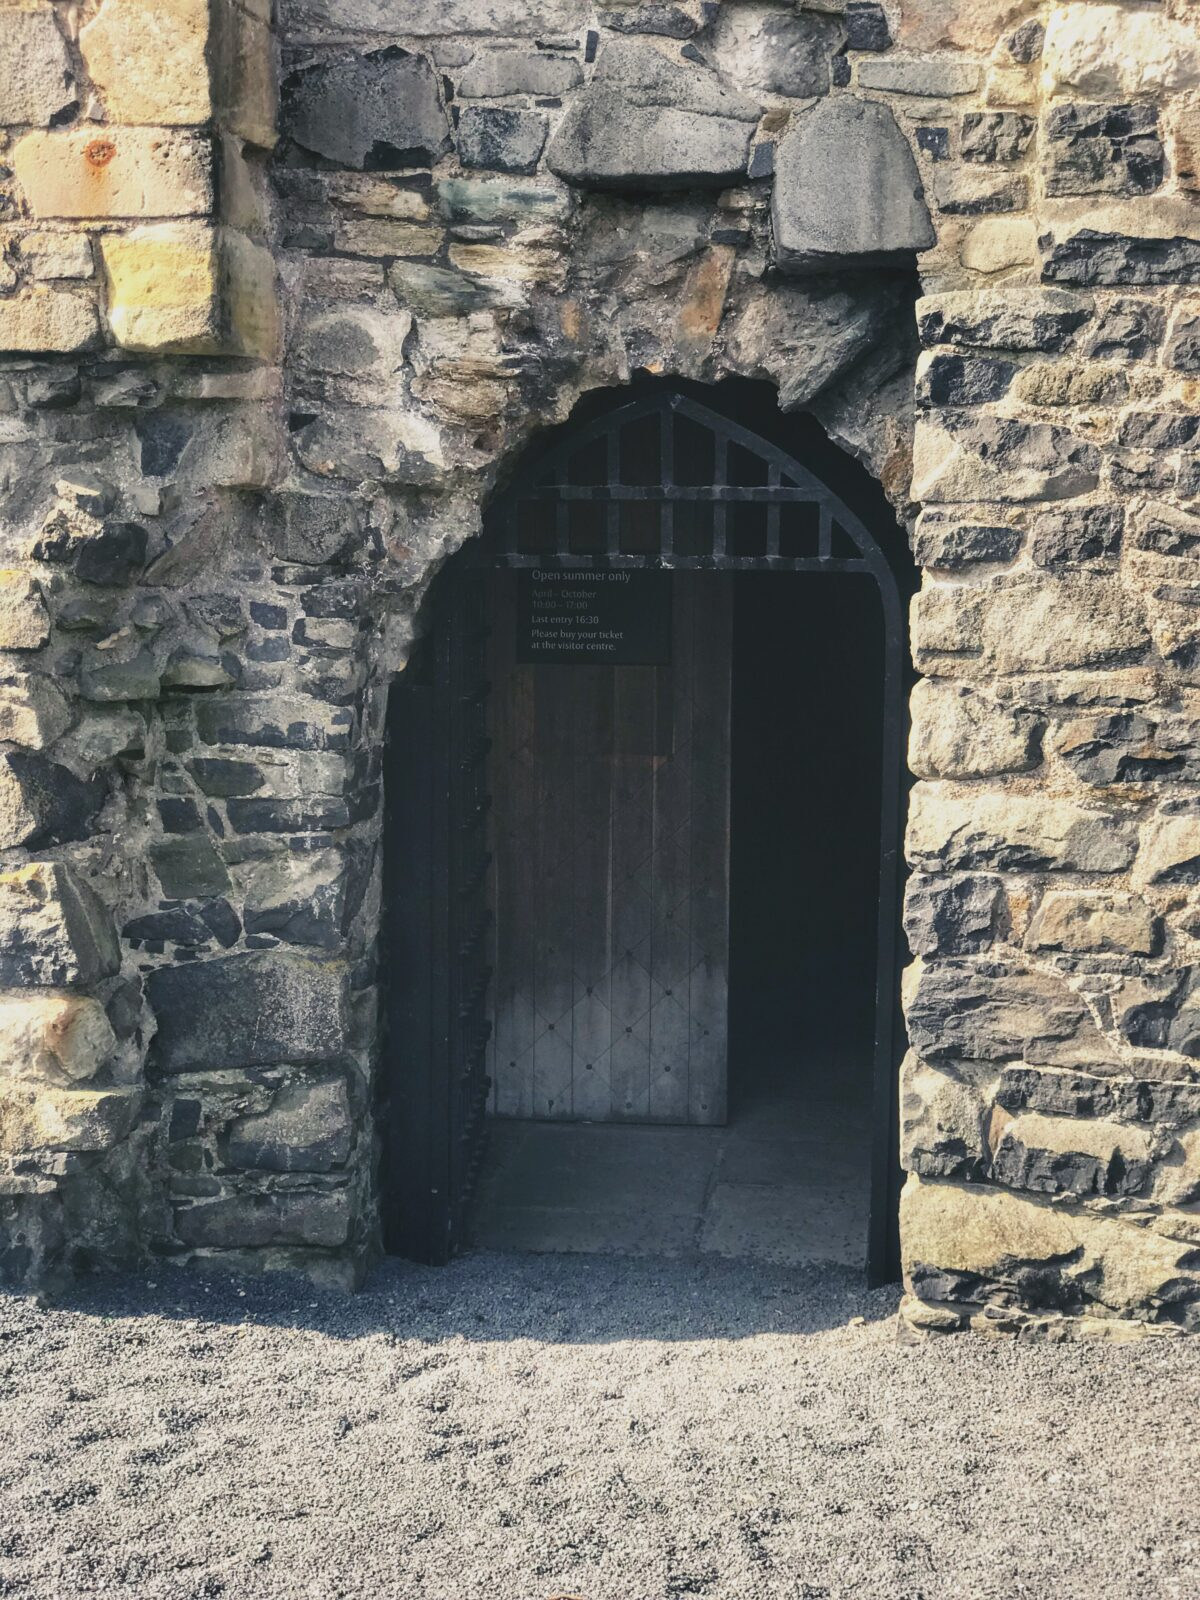 The doorway into Dundonald Castle with an iron arch and door